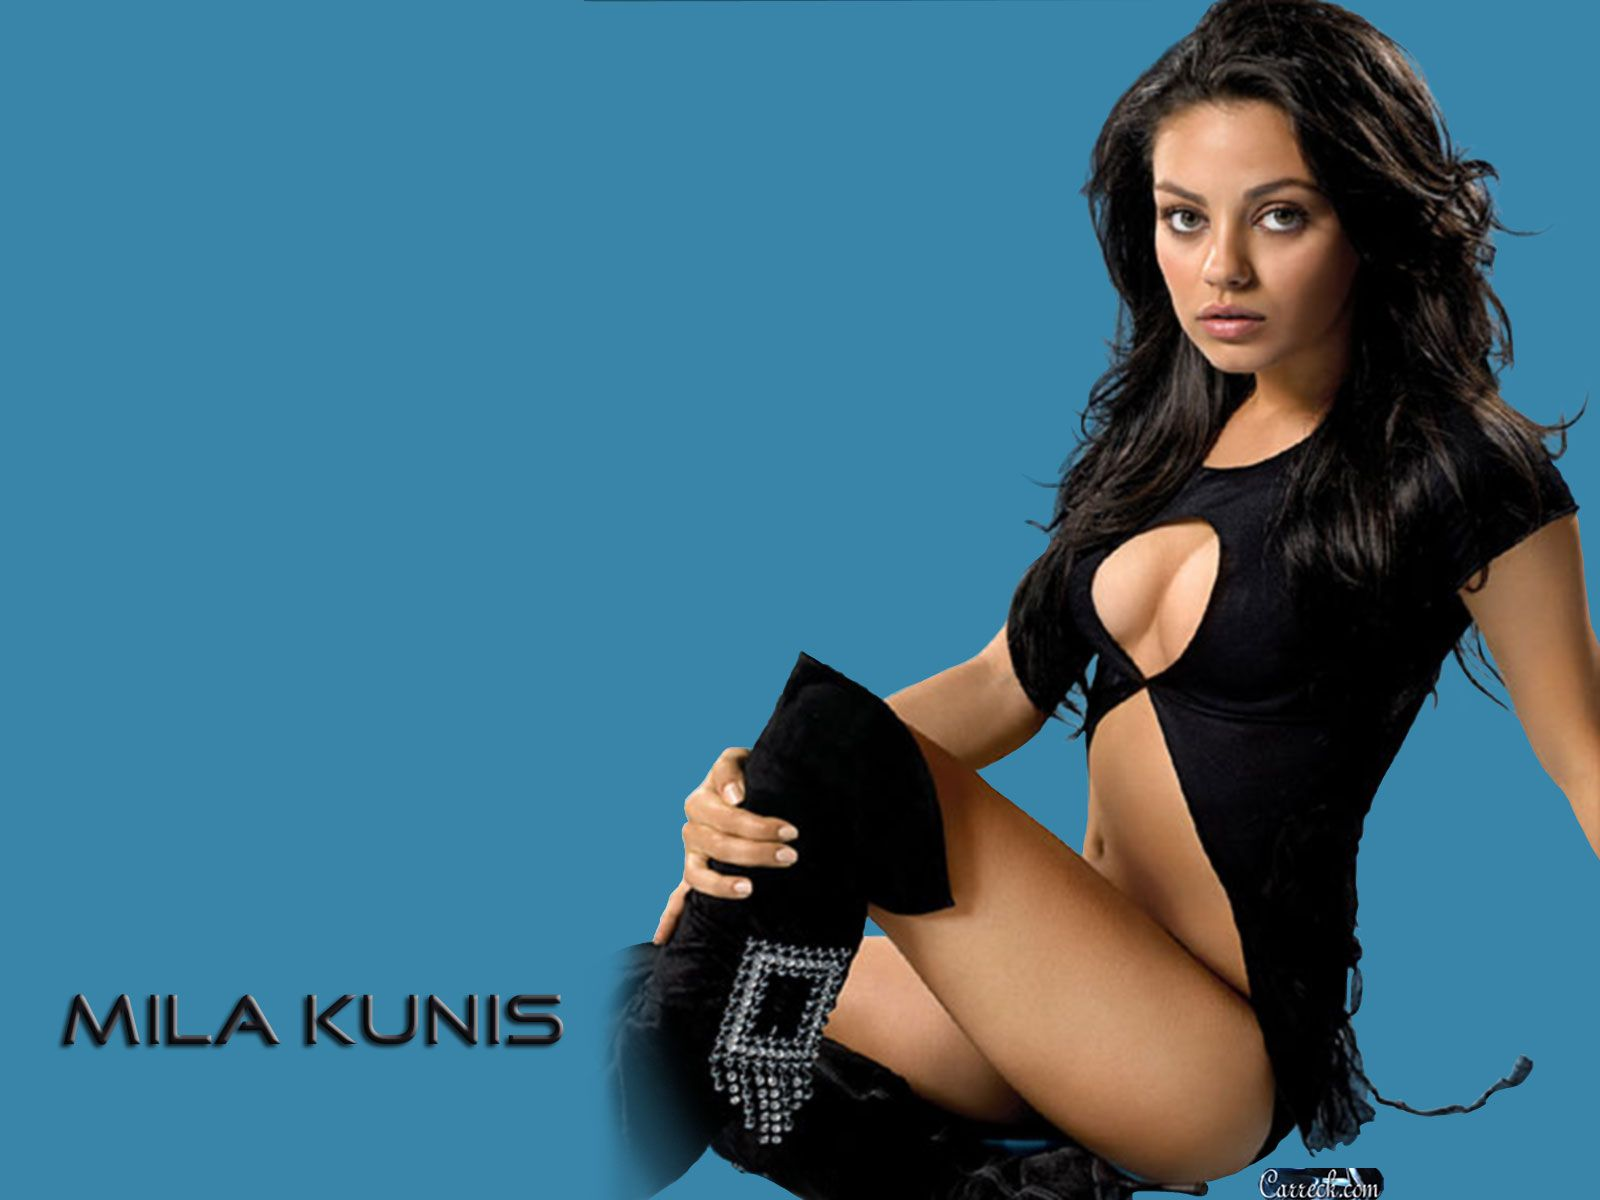 Mila kunis naked with legs in the air — photo 14